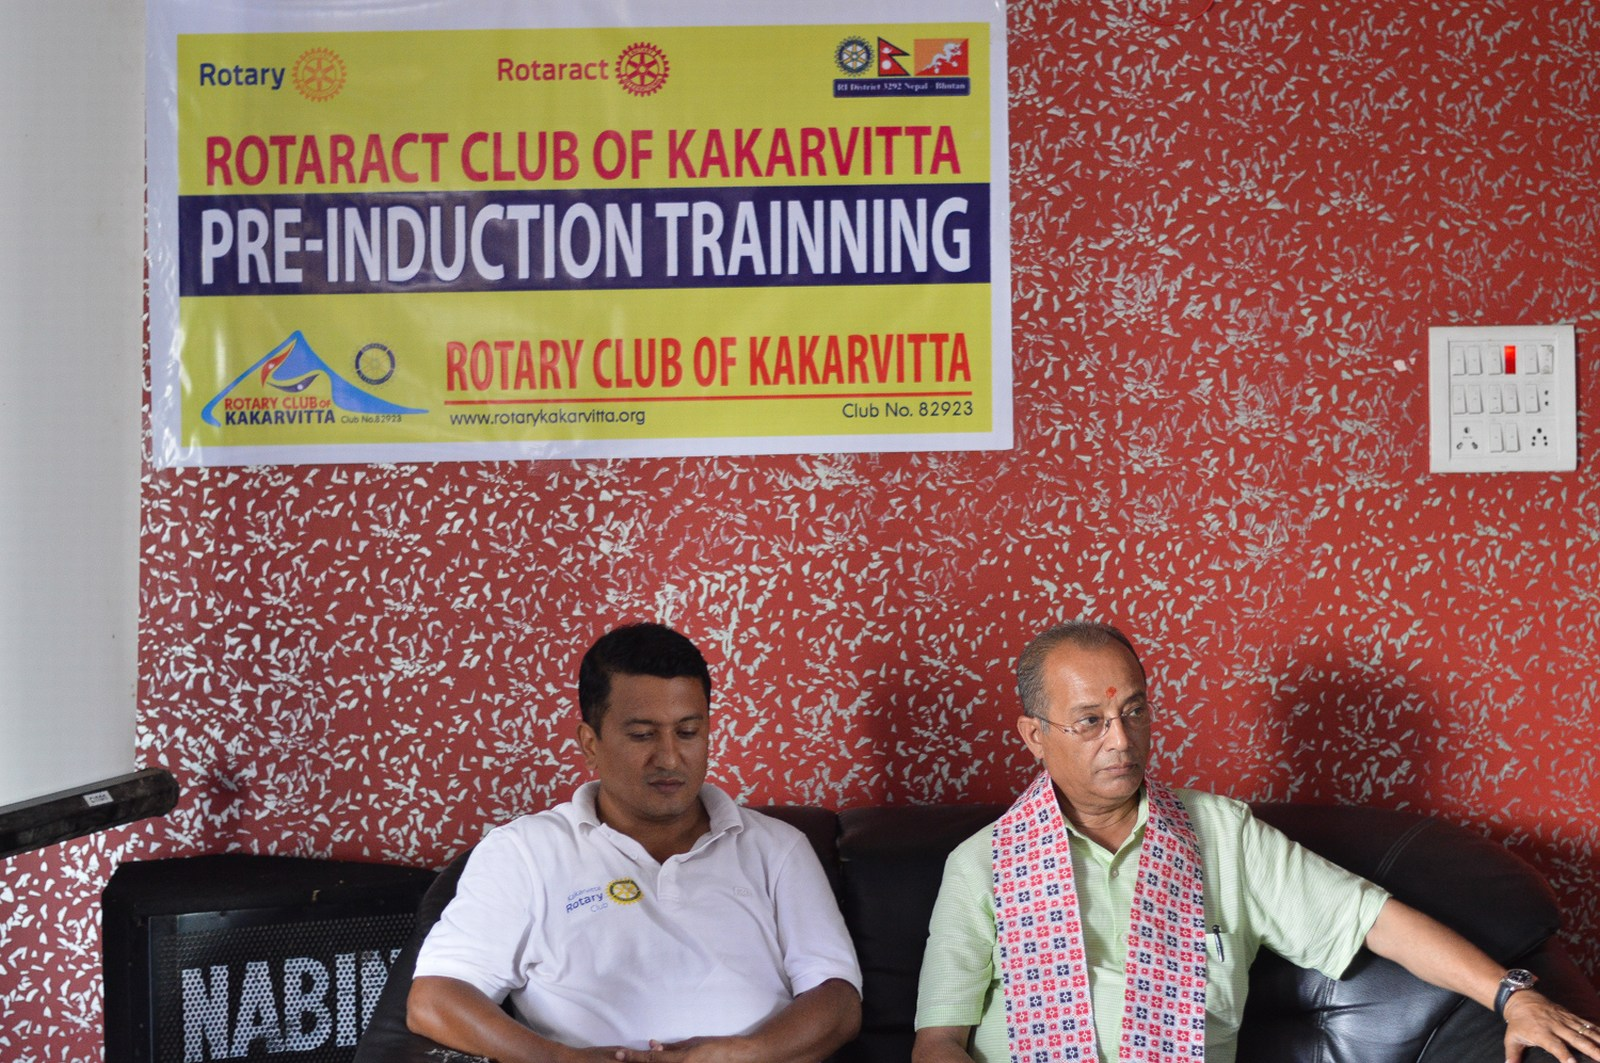 Pre-Induction-Training-of-Rotaract-Club-of-Kakarvitta-Rotary-Club-of-Kakarvitta-5